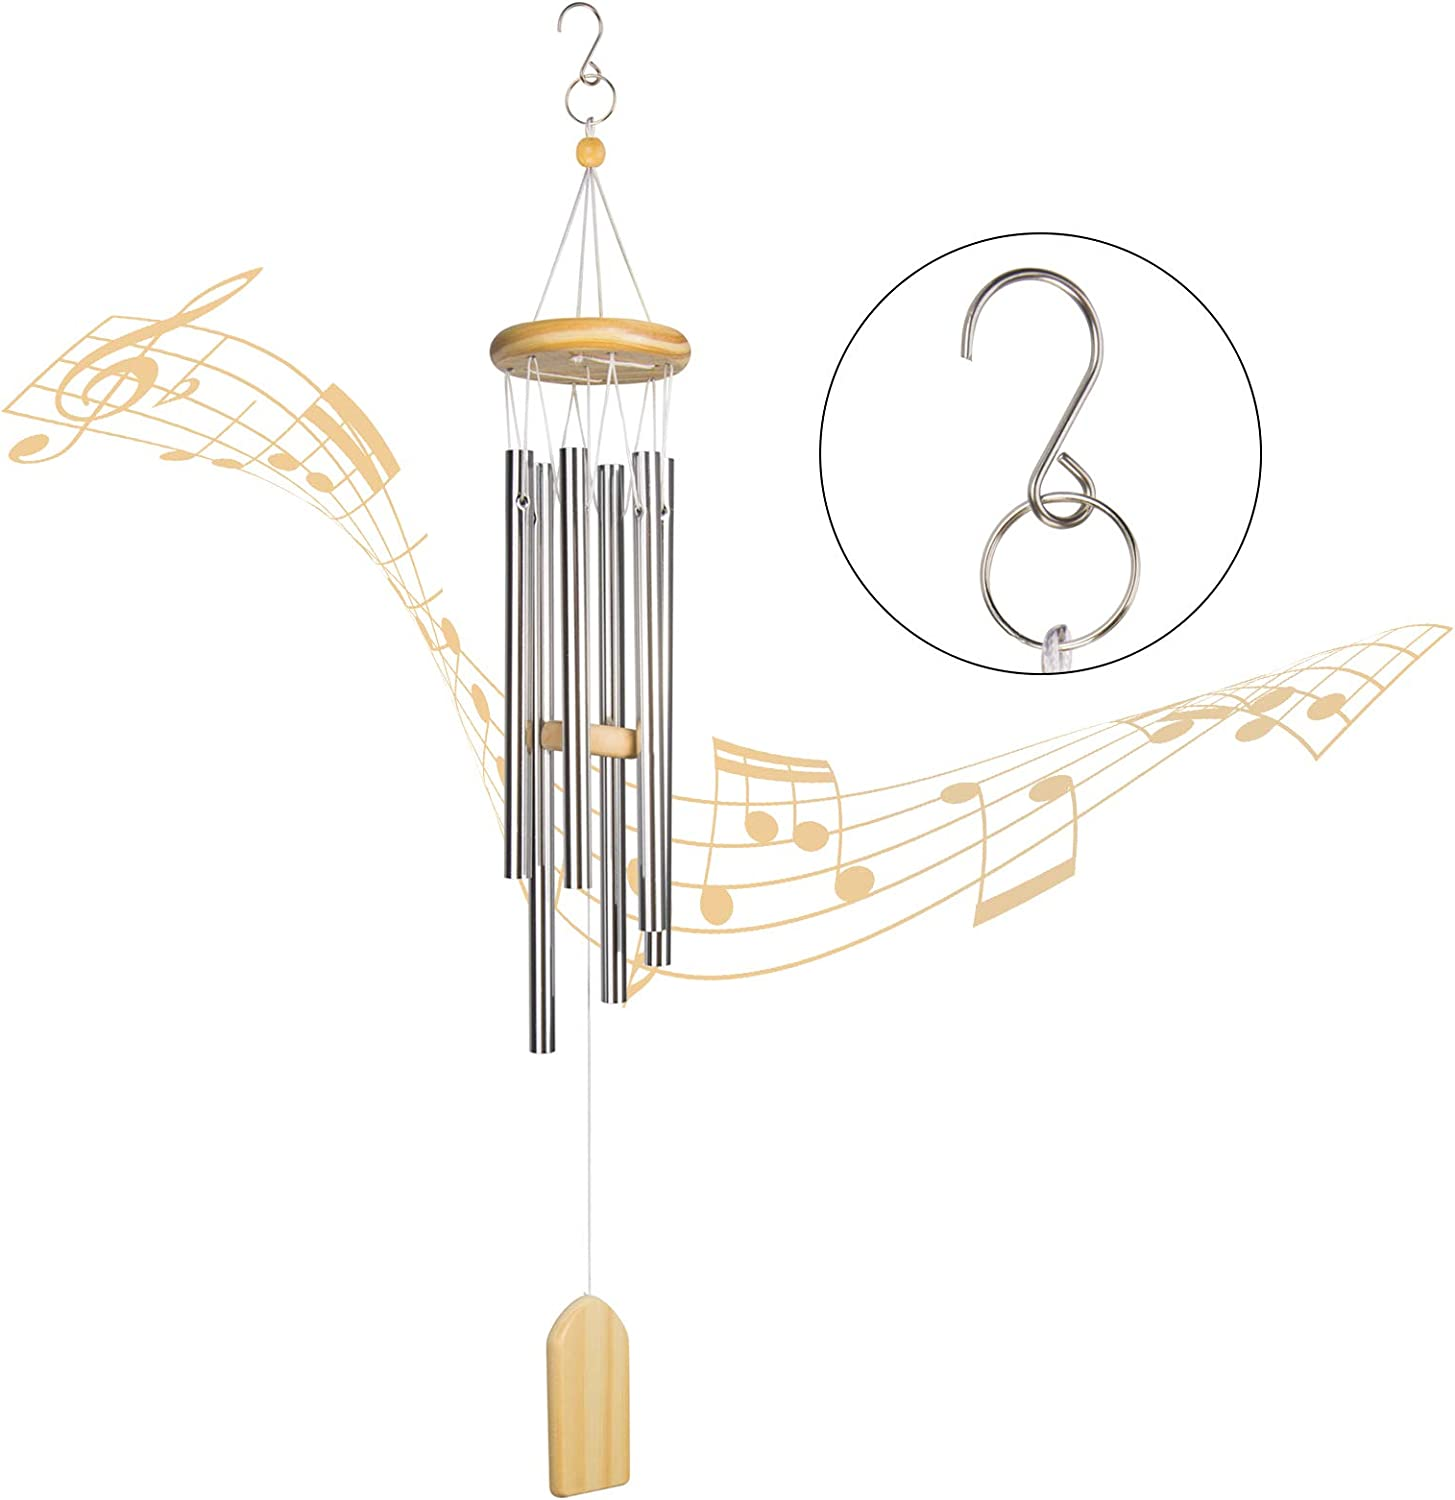 Fohil Wind Chimes Outdoor, 6 Aluminum Tubes Wooden Memorial Wind Chimes, Wind Bell Best Gift Chimes for Garden Patio Outdoor Yard Porch Home Decoration 25.6Inch (Light Brown)